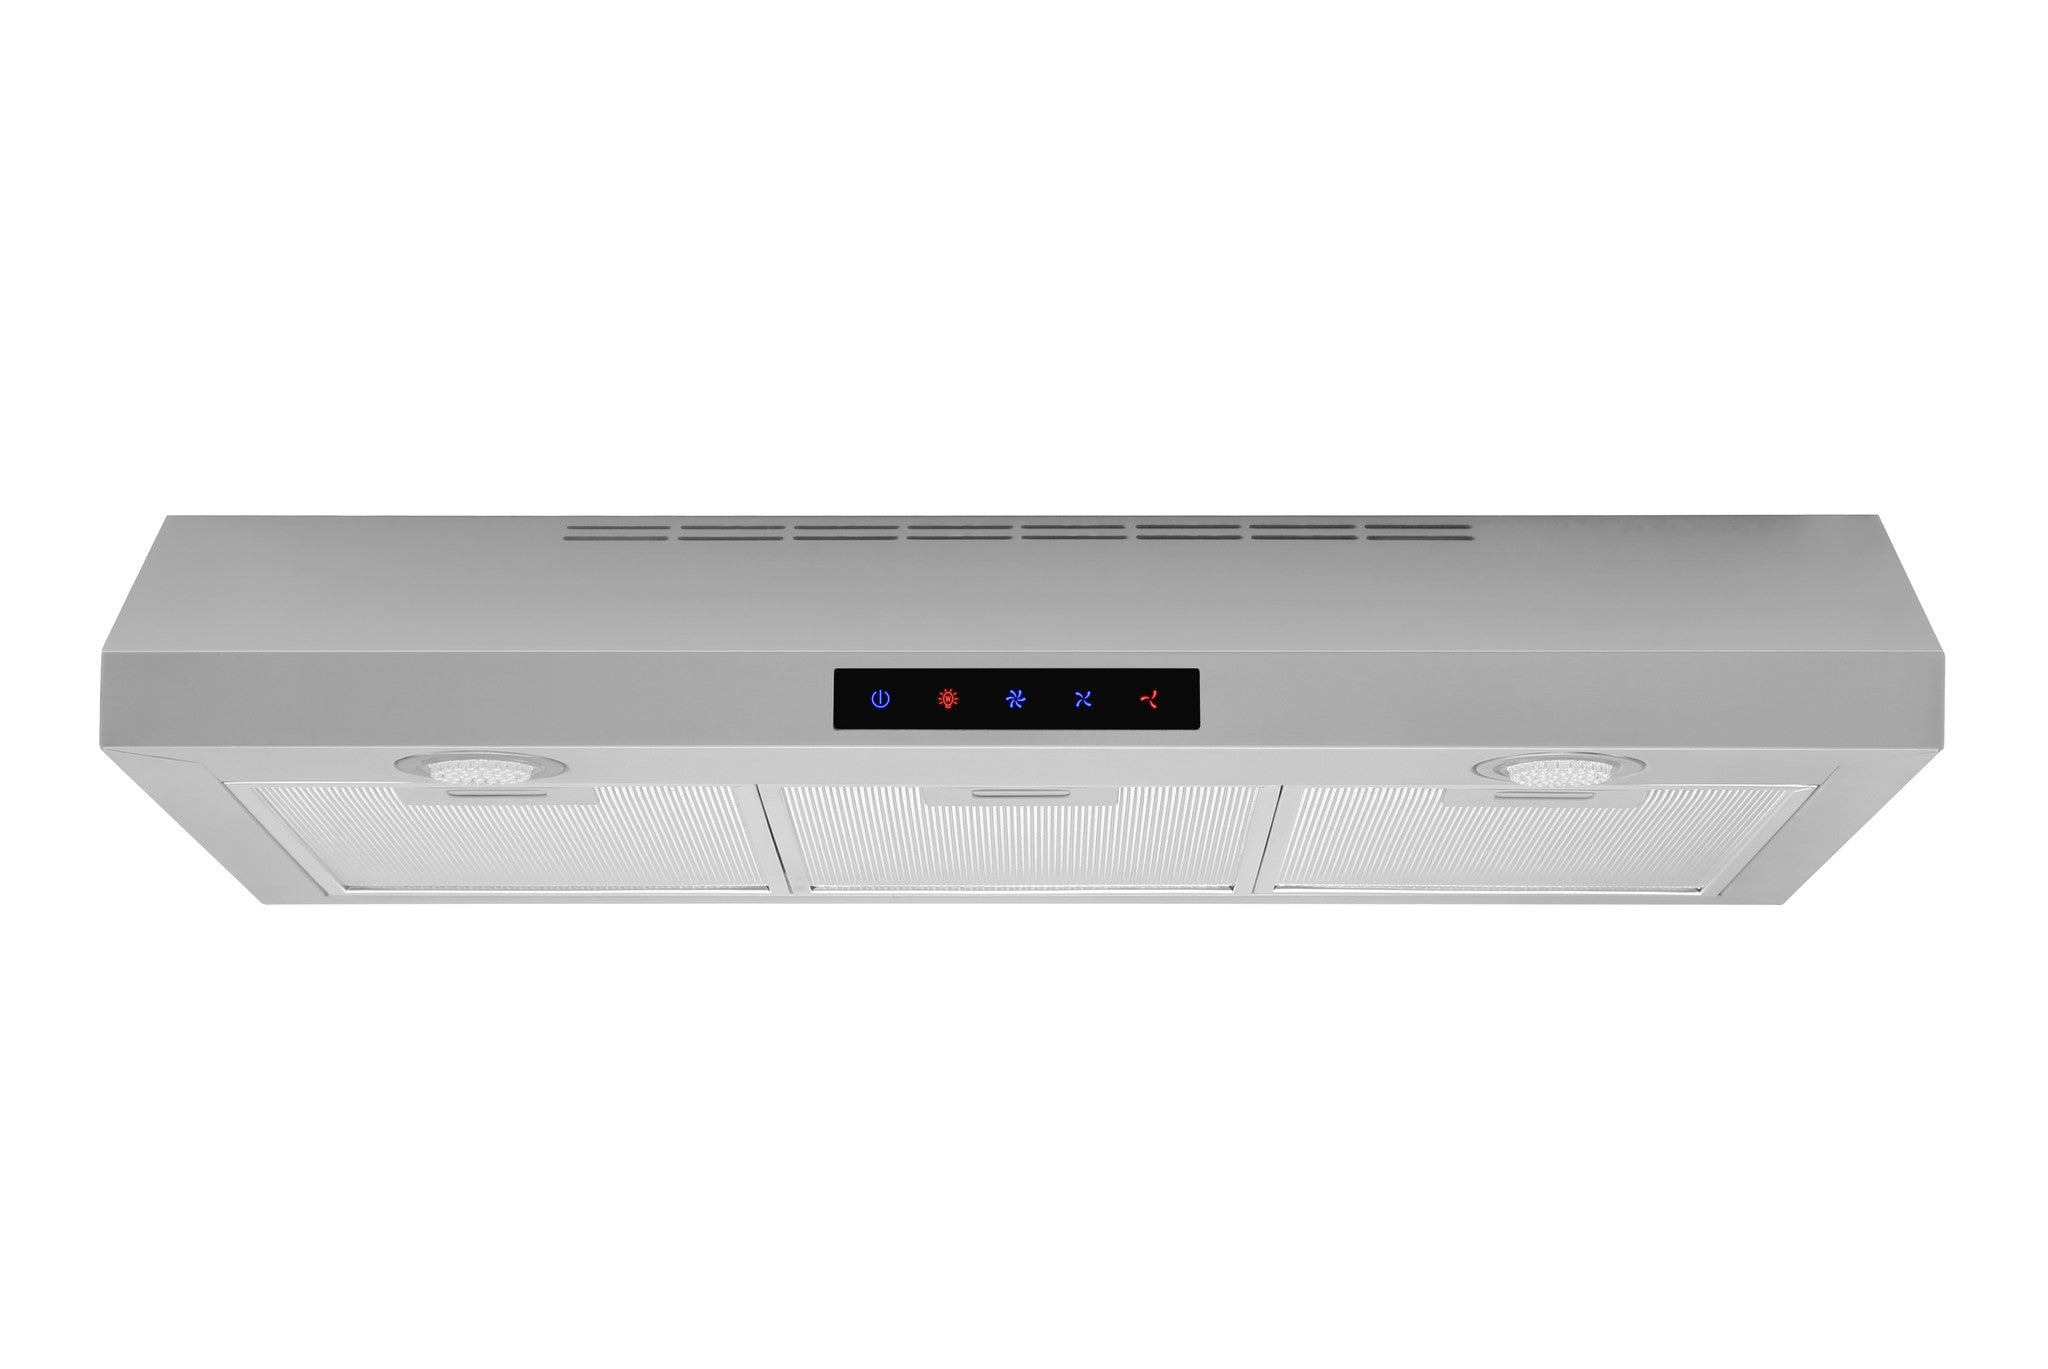 36-inch Stainless Steel Under-Cabinet Range Hood (Model WUC90-LED)